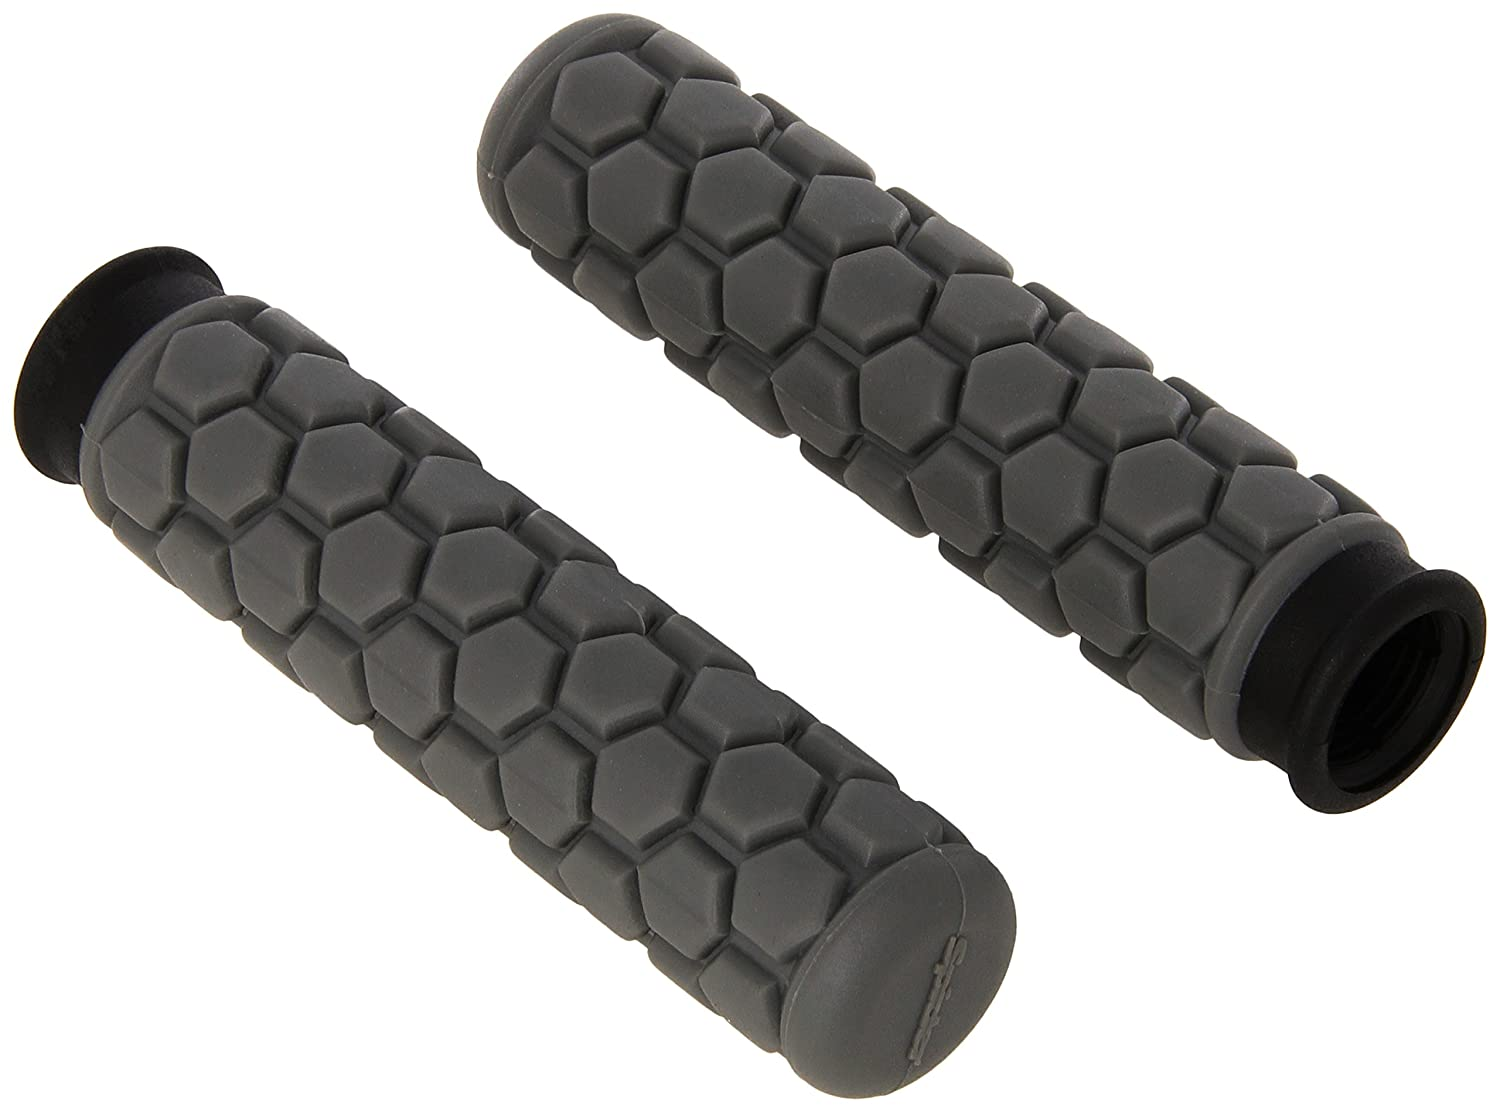 Spider Grips A3-G Grey A3 Grips for ATV Watercraft and Snowmobiles